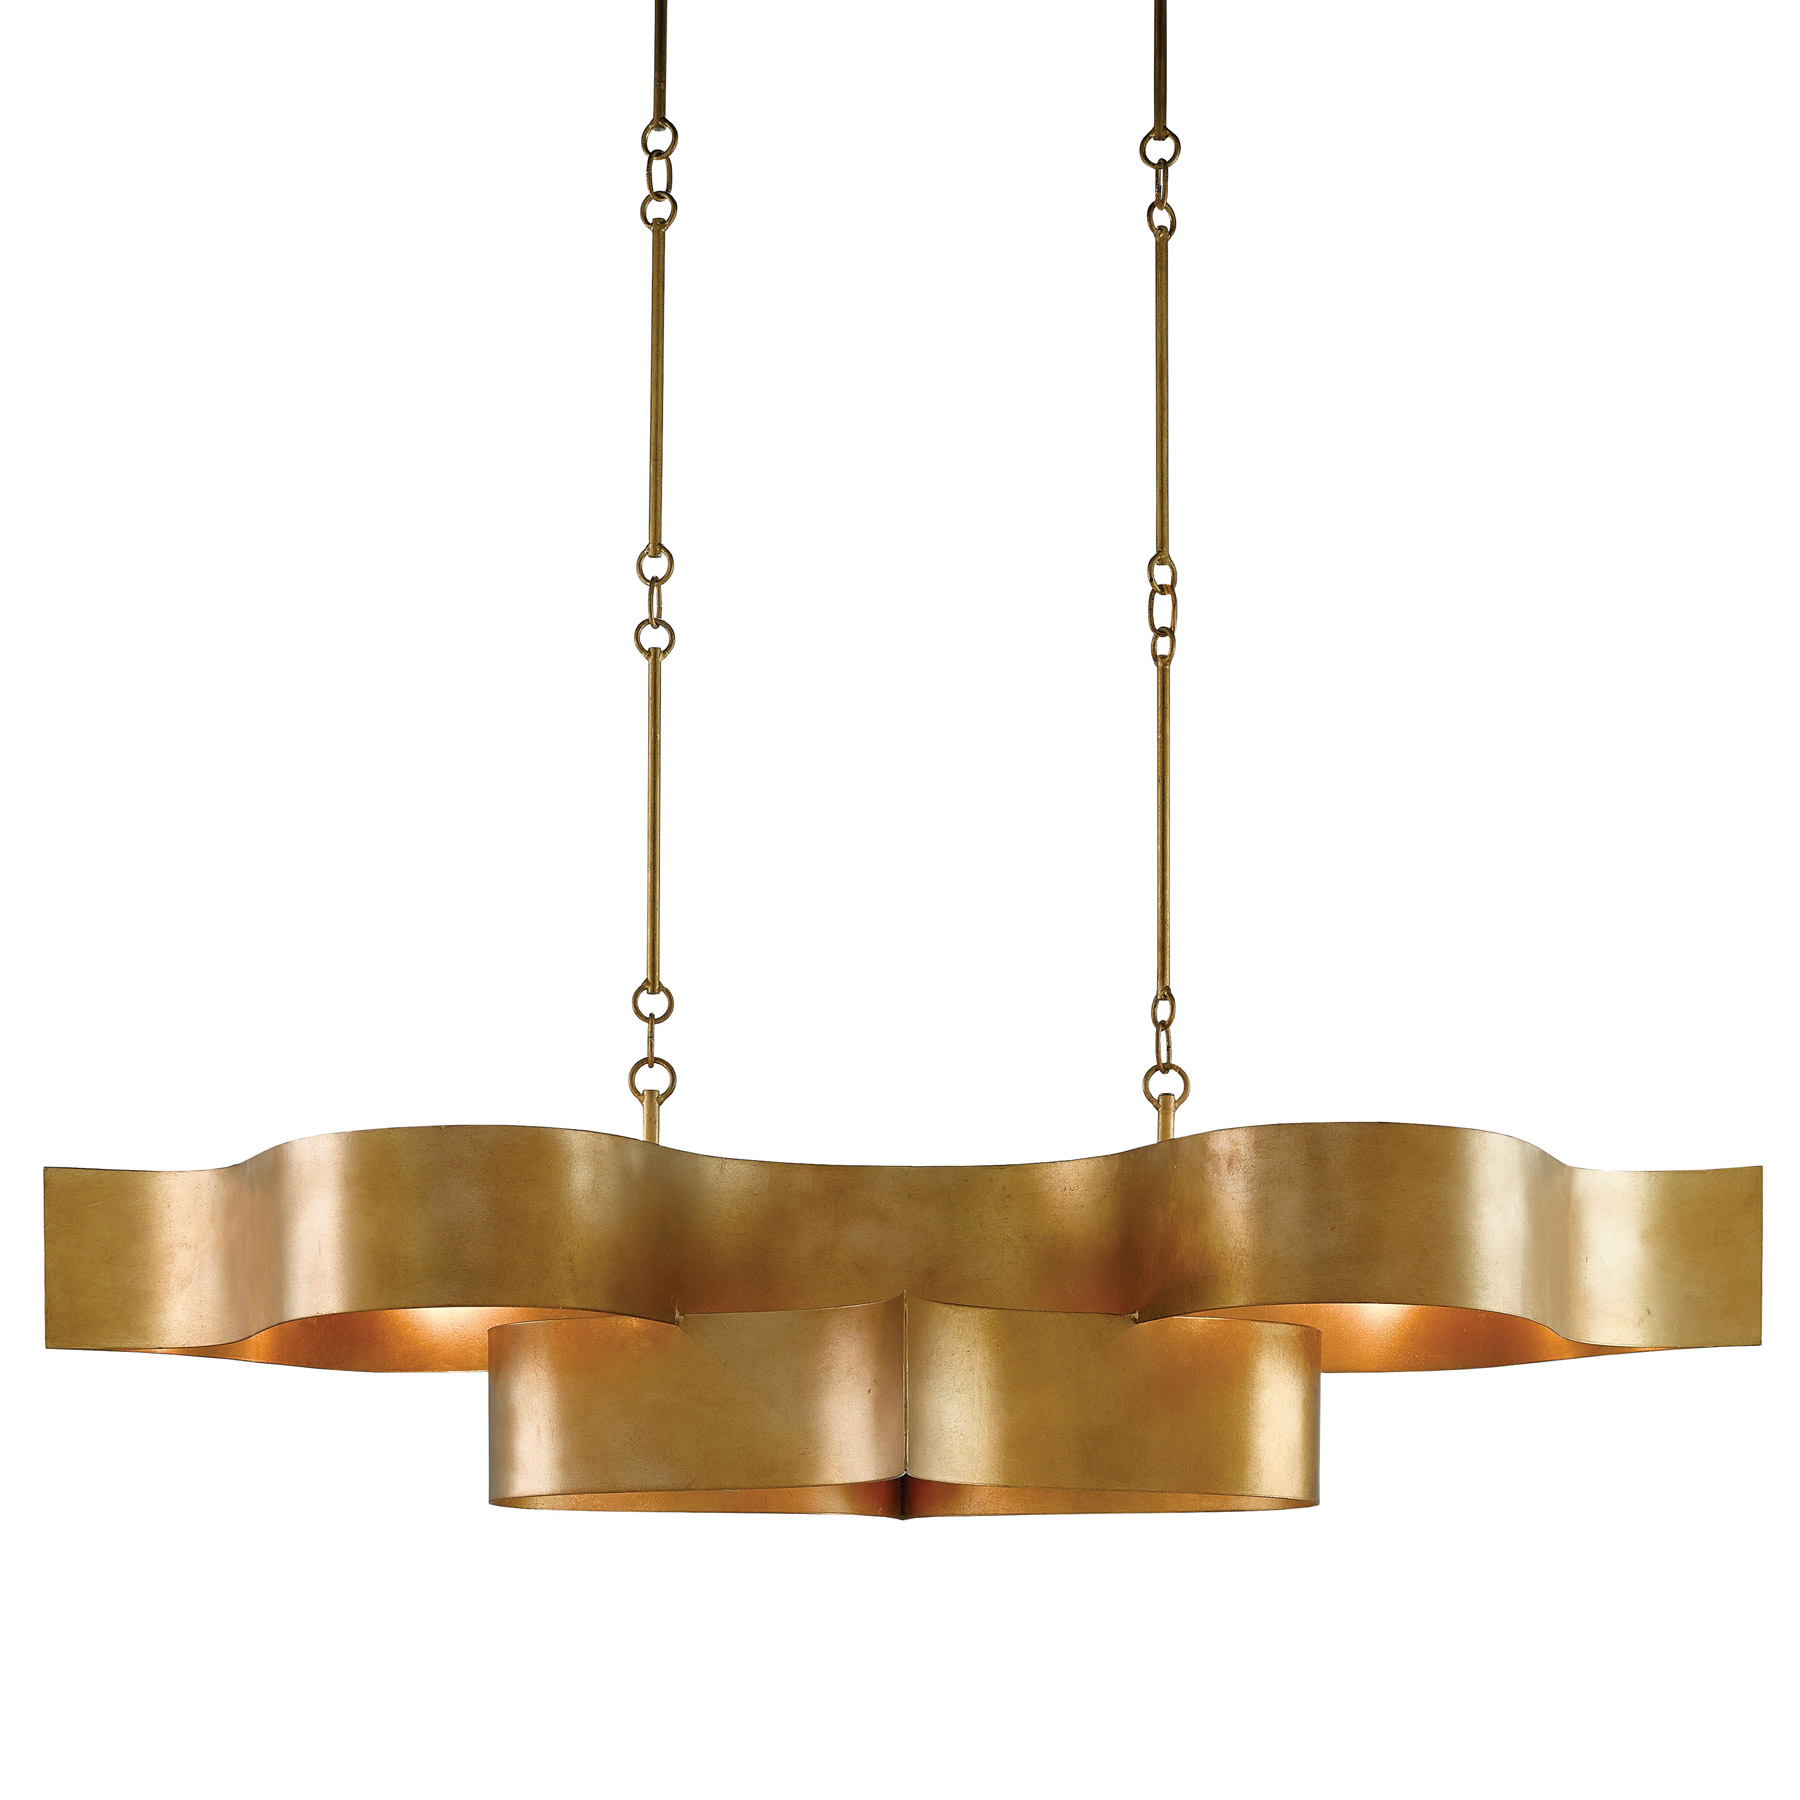 Currey and company 9000 0046 grand lotus oval chandelier island light aloadofball Image collections